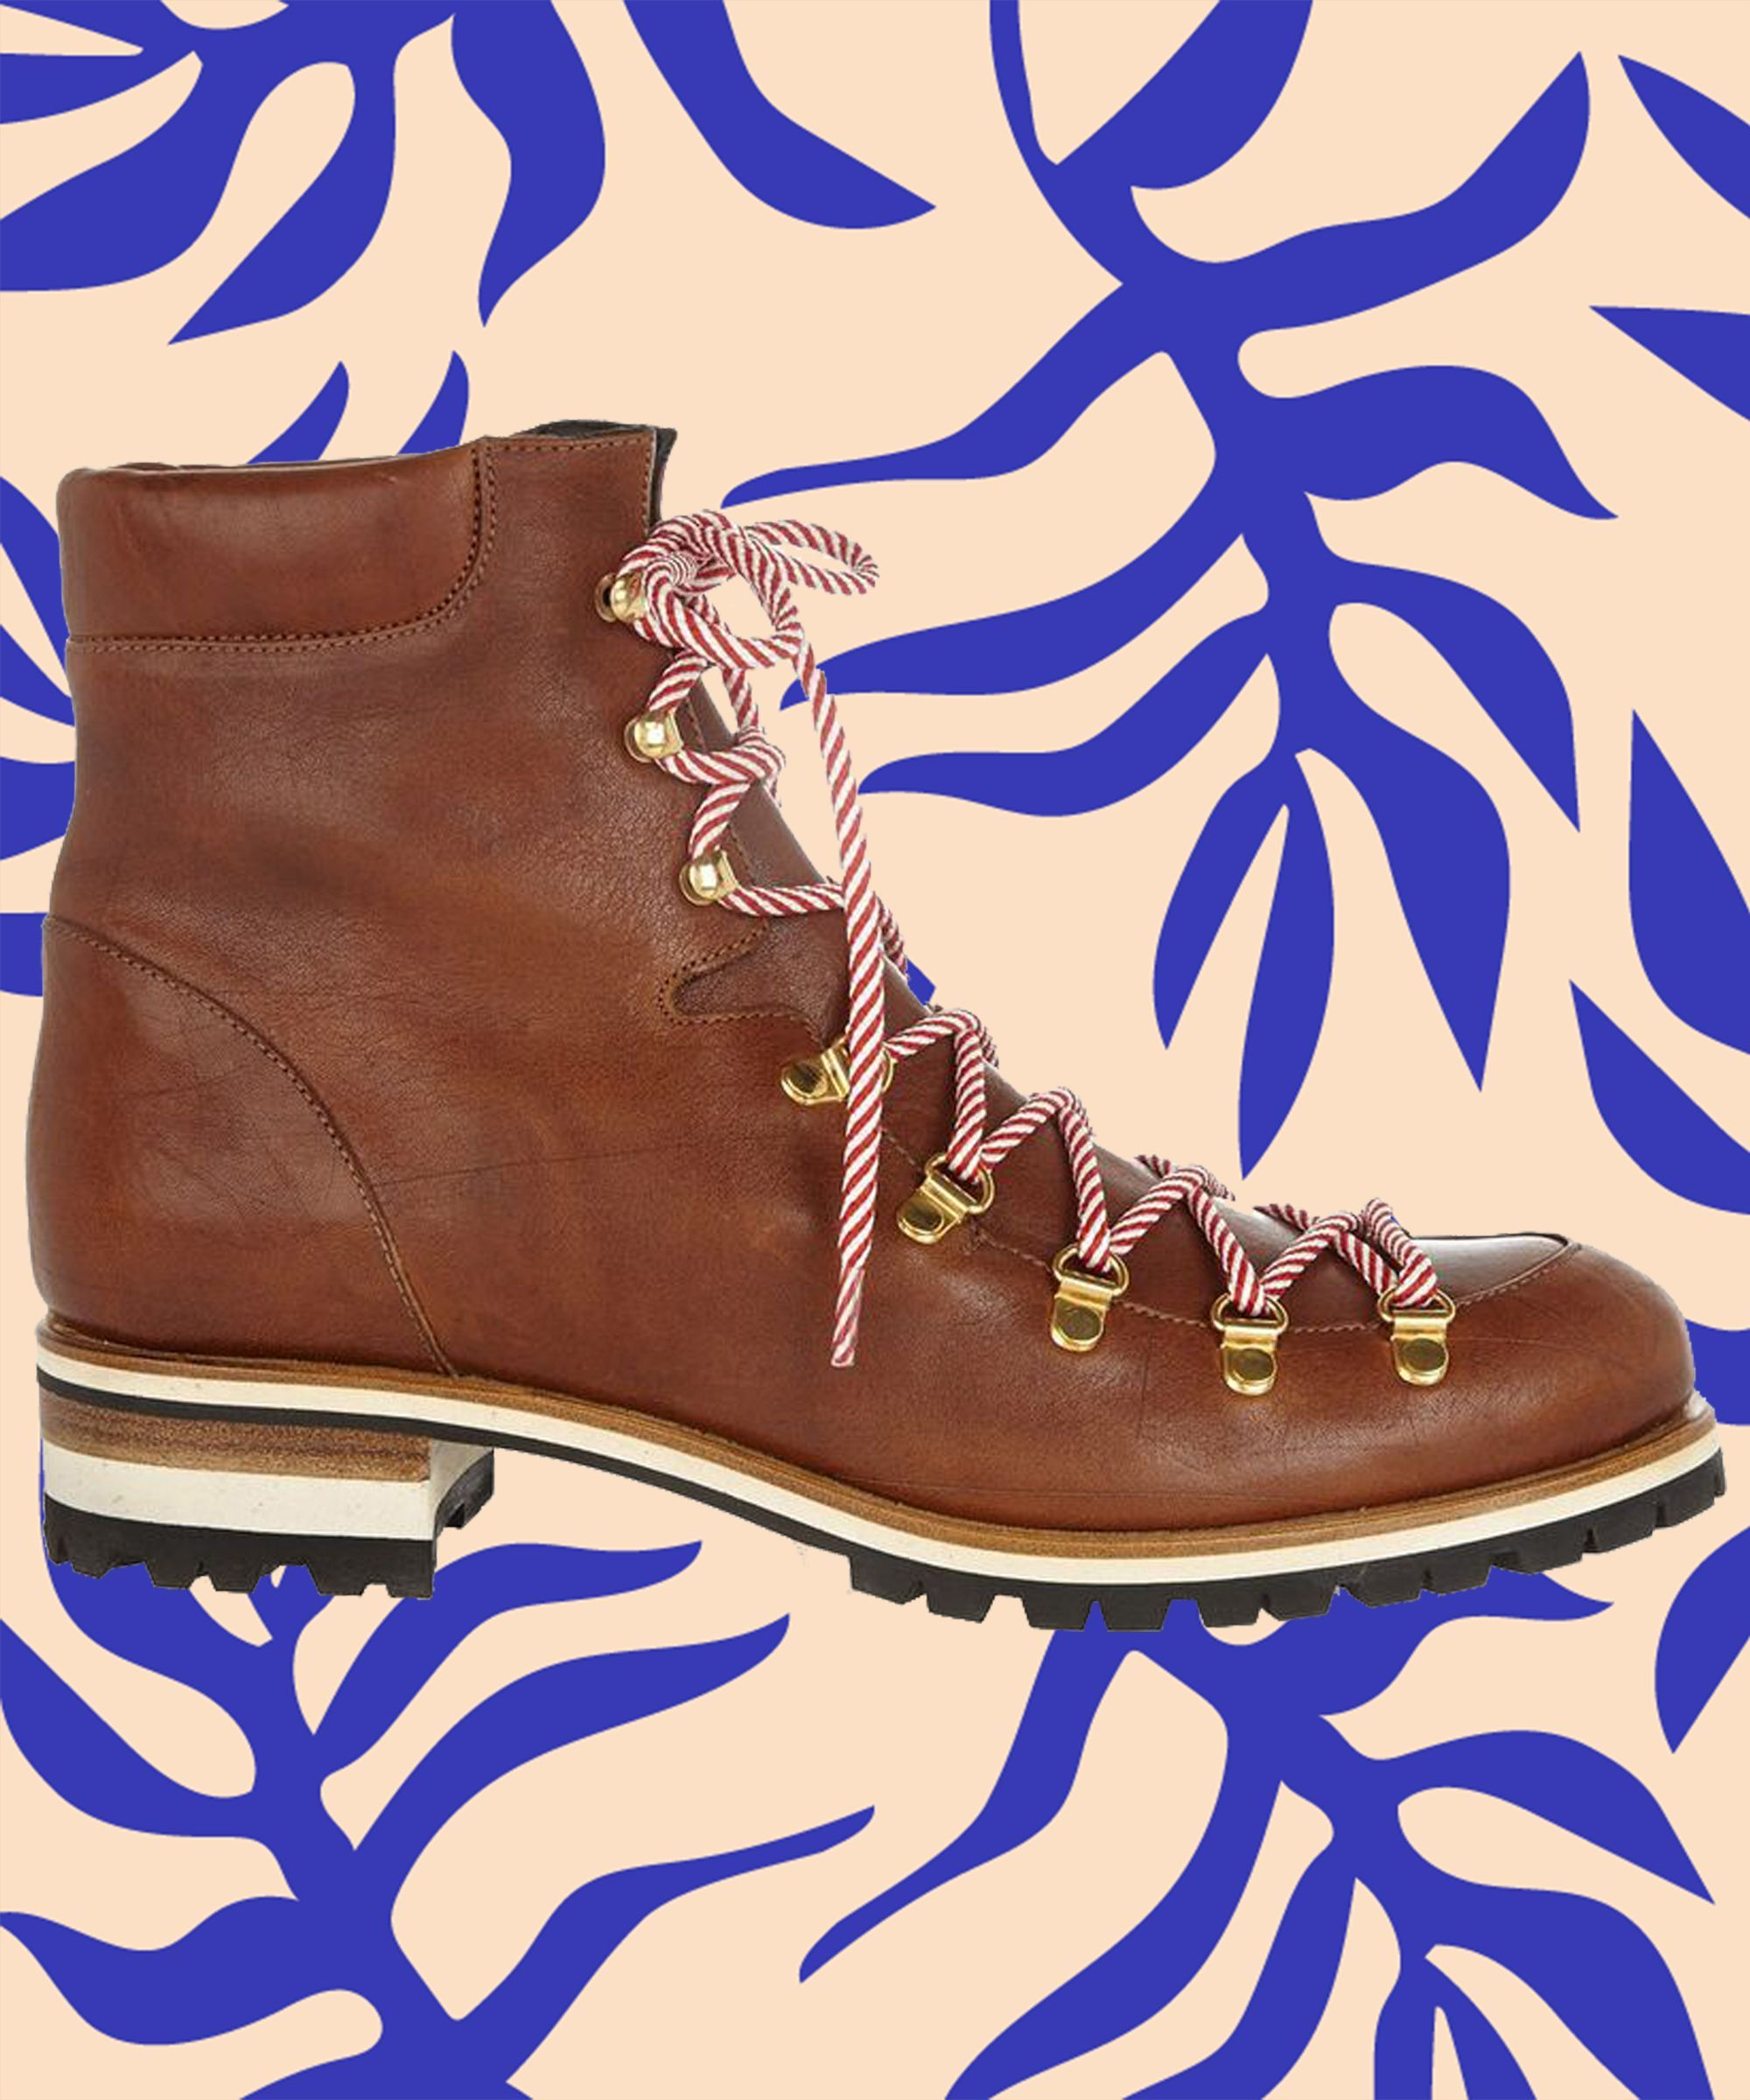 comforter for image best walking comfortable ankle boots booties fall